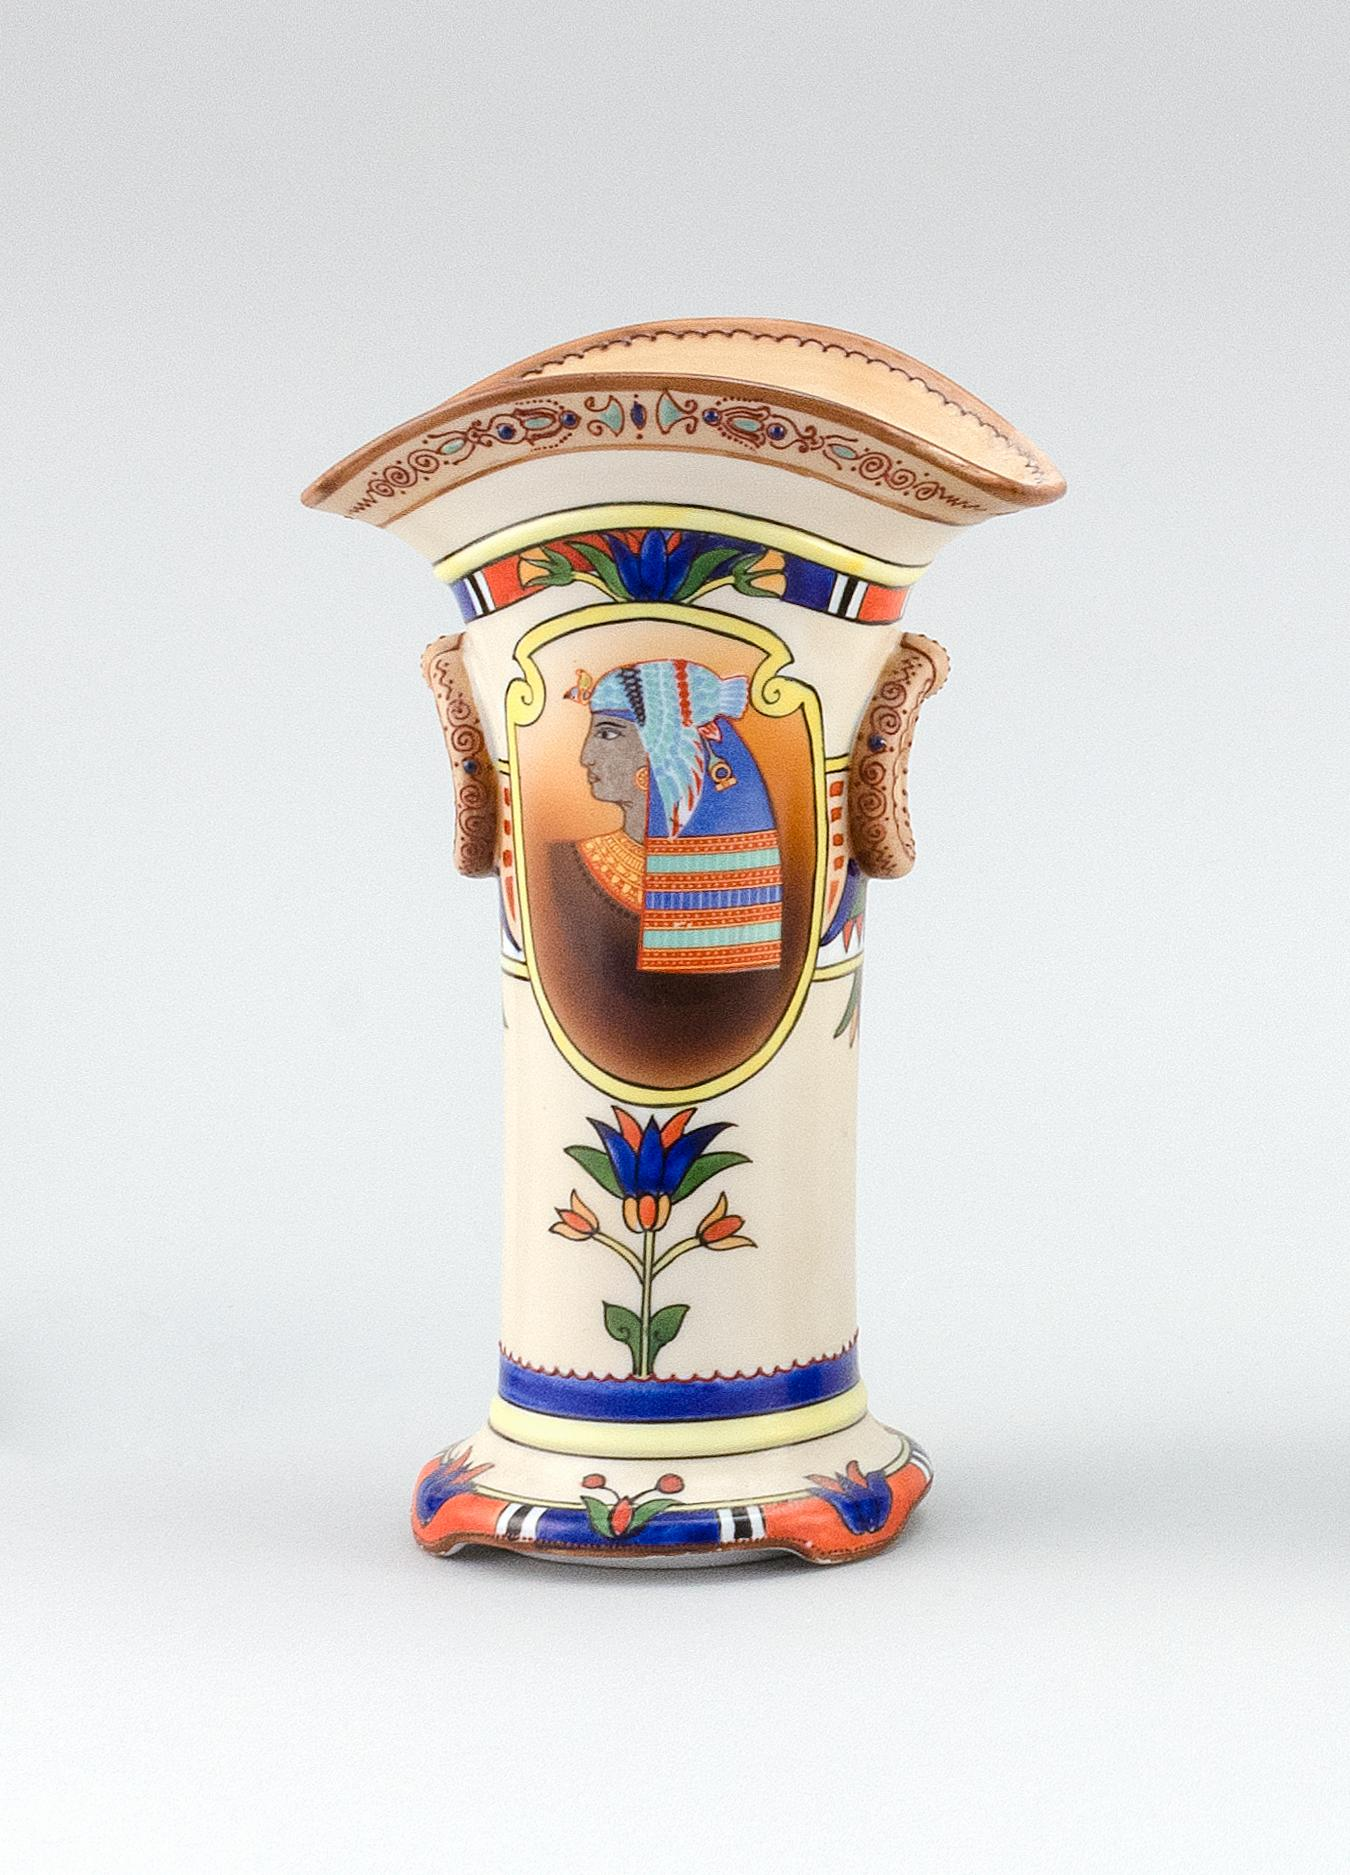 NIPPON PORCELAIN VASE In flared form, with mock ring handles and decoration of Egyptian motifs. Van Patten #47 mark on base. Height...